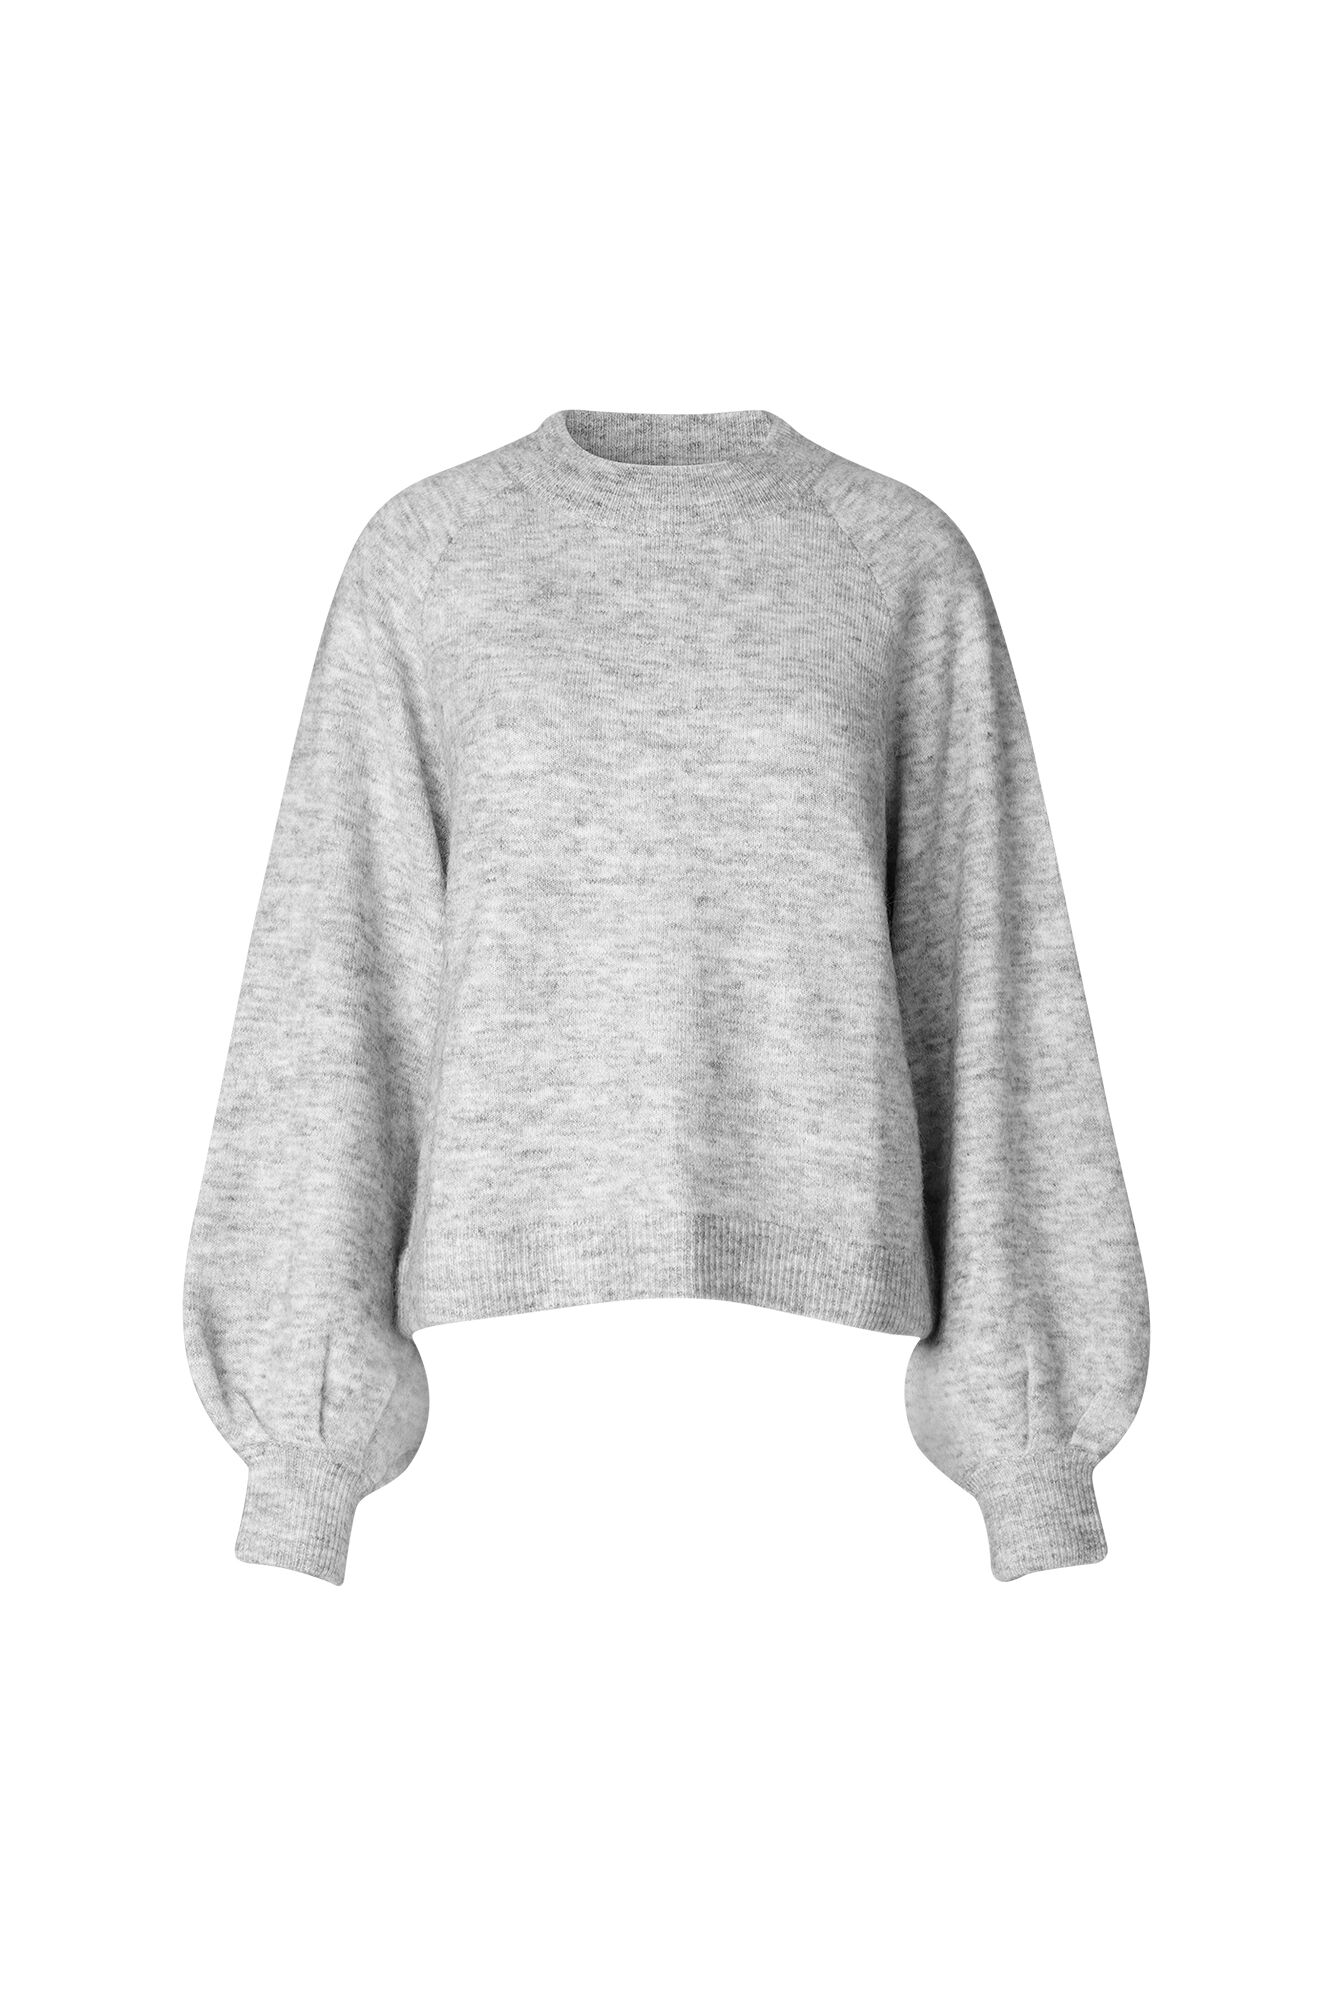 ENFUDGE LS RAGLAN KNIT 5182, LIGHT GREY MEL.